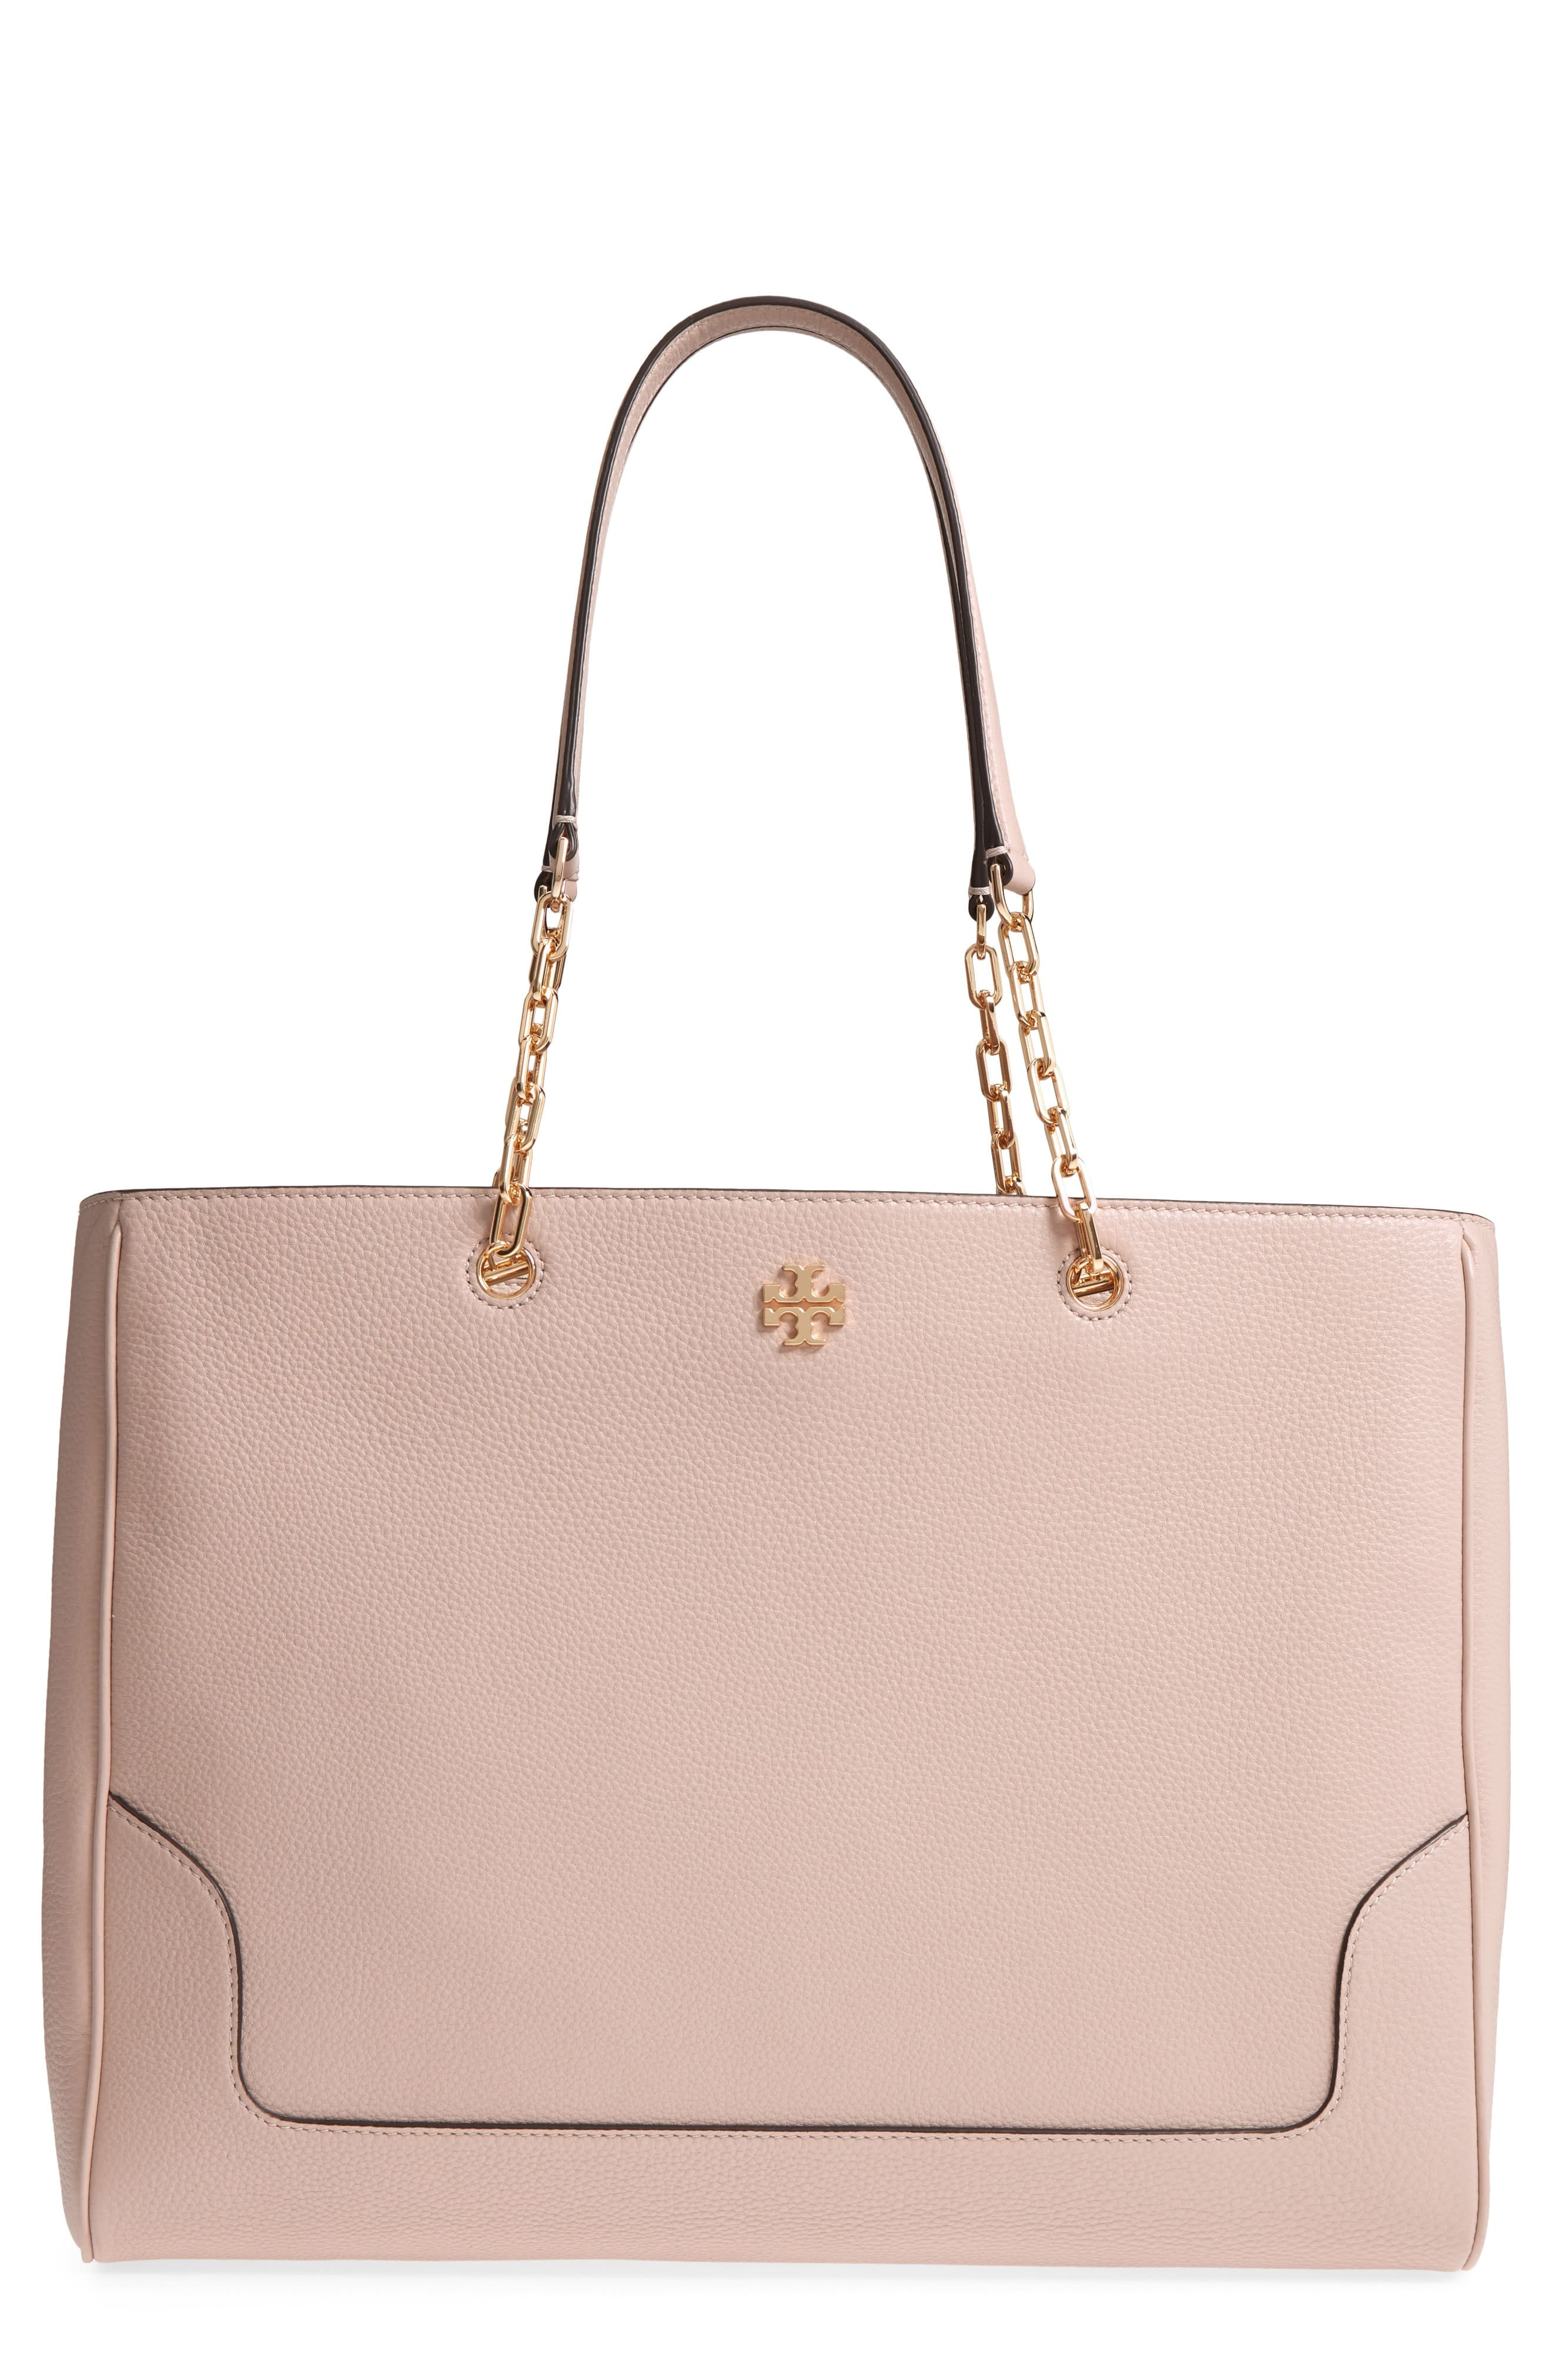 eb2504576a5 Tory Burch Marsden Pebbled Leather Tote  263.98 + fs - Slickdeals.net